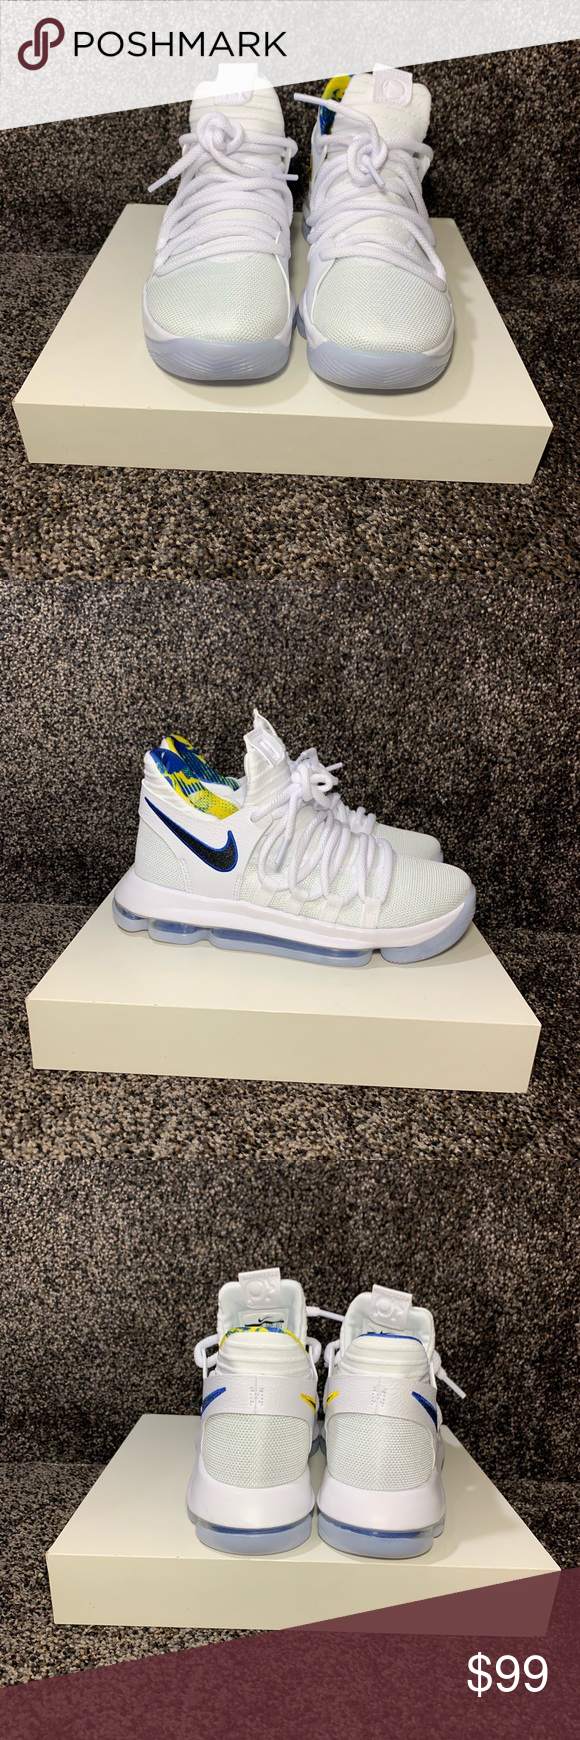 san francisco 24dbc 6ad7e NIKE ZOOM KD-10 size 5Y PRODUCT INFORMATION Nike KD 10 Limited Edition NBA  Golden